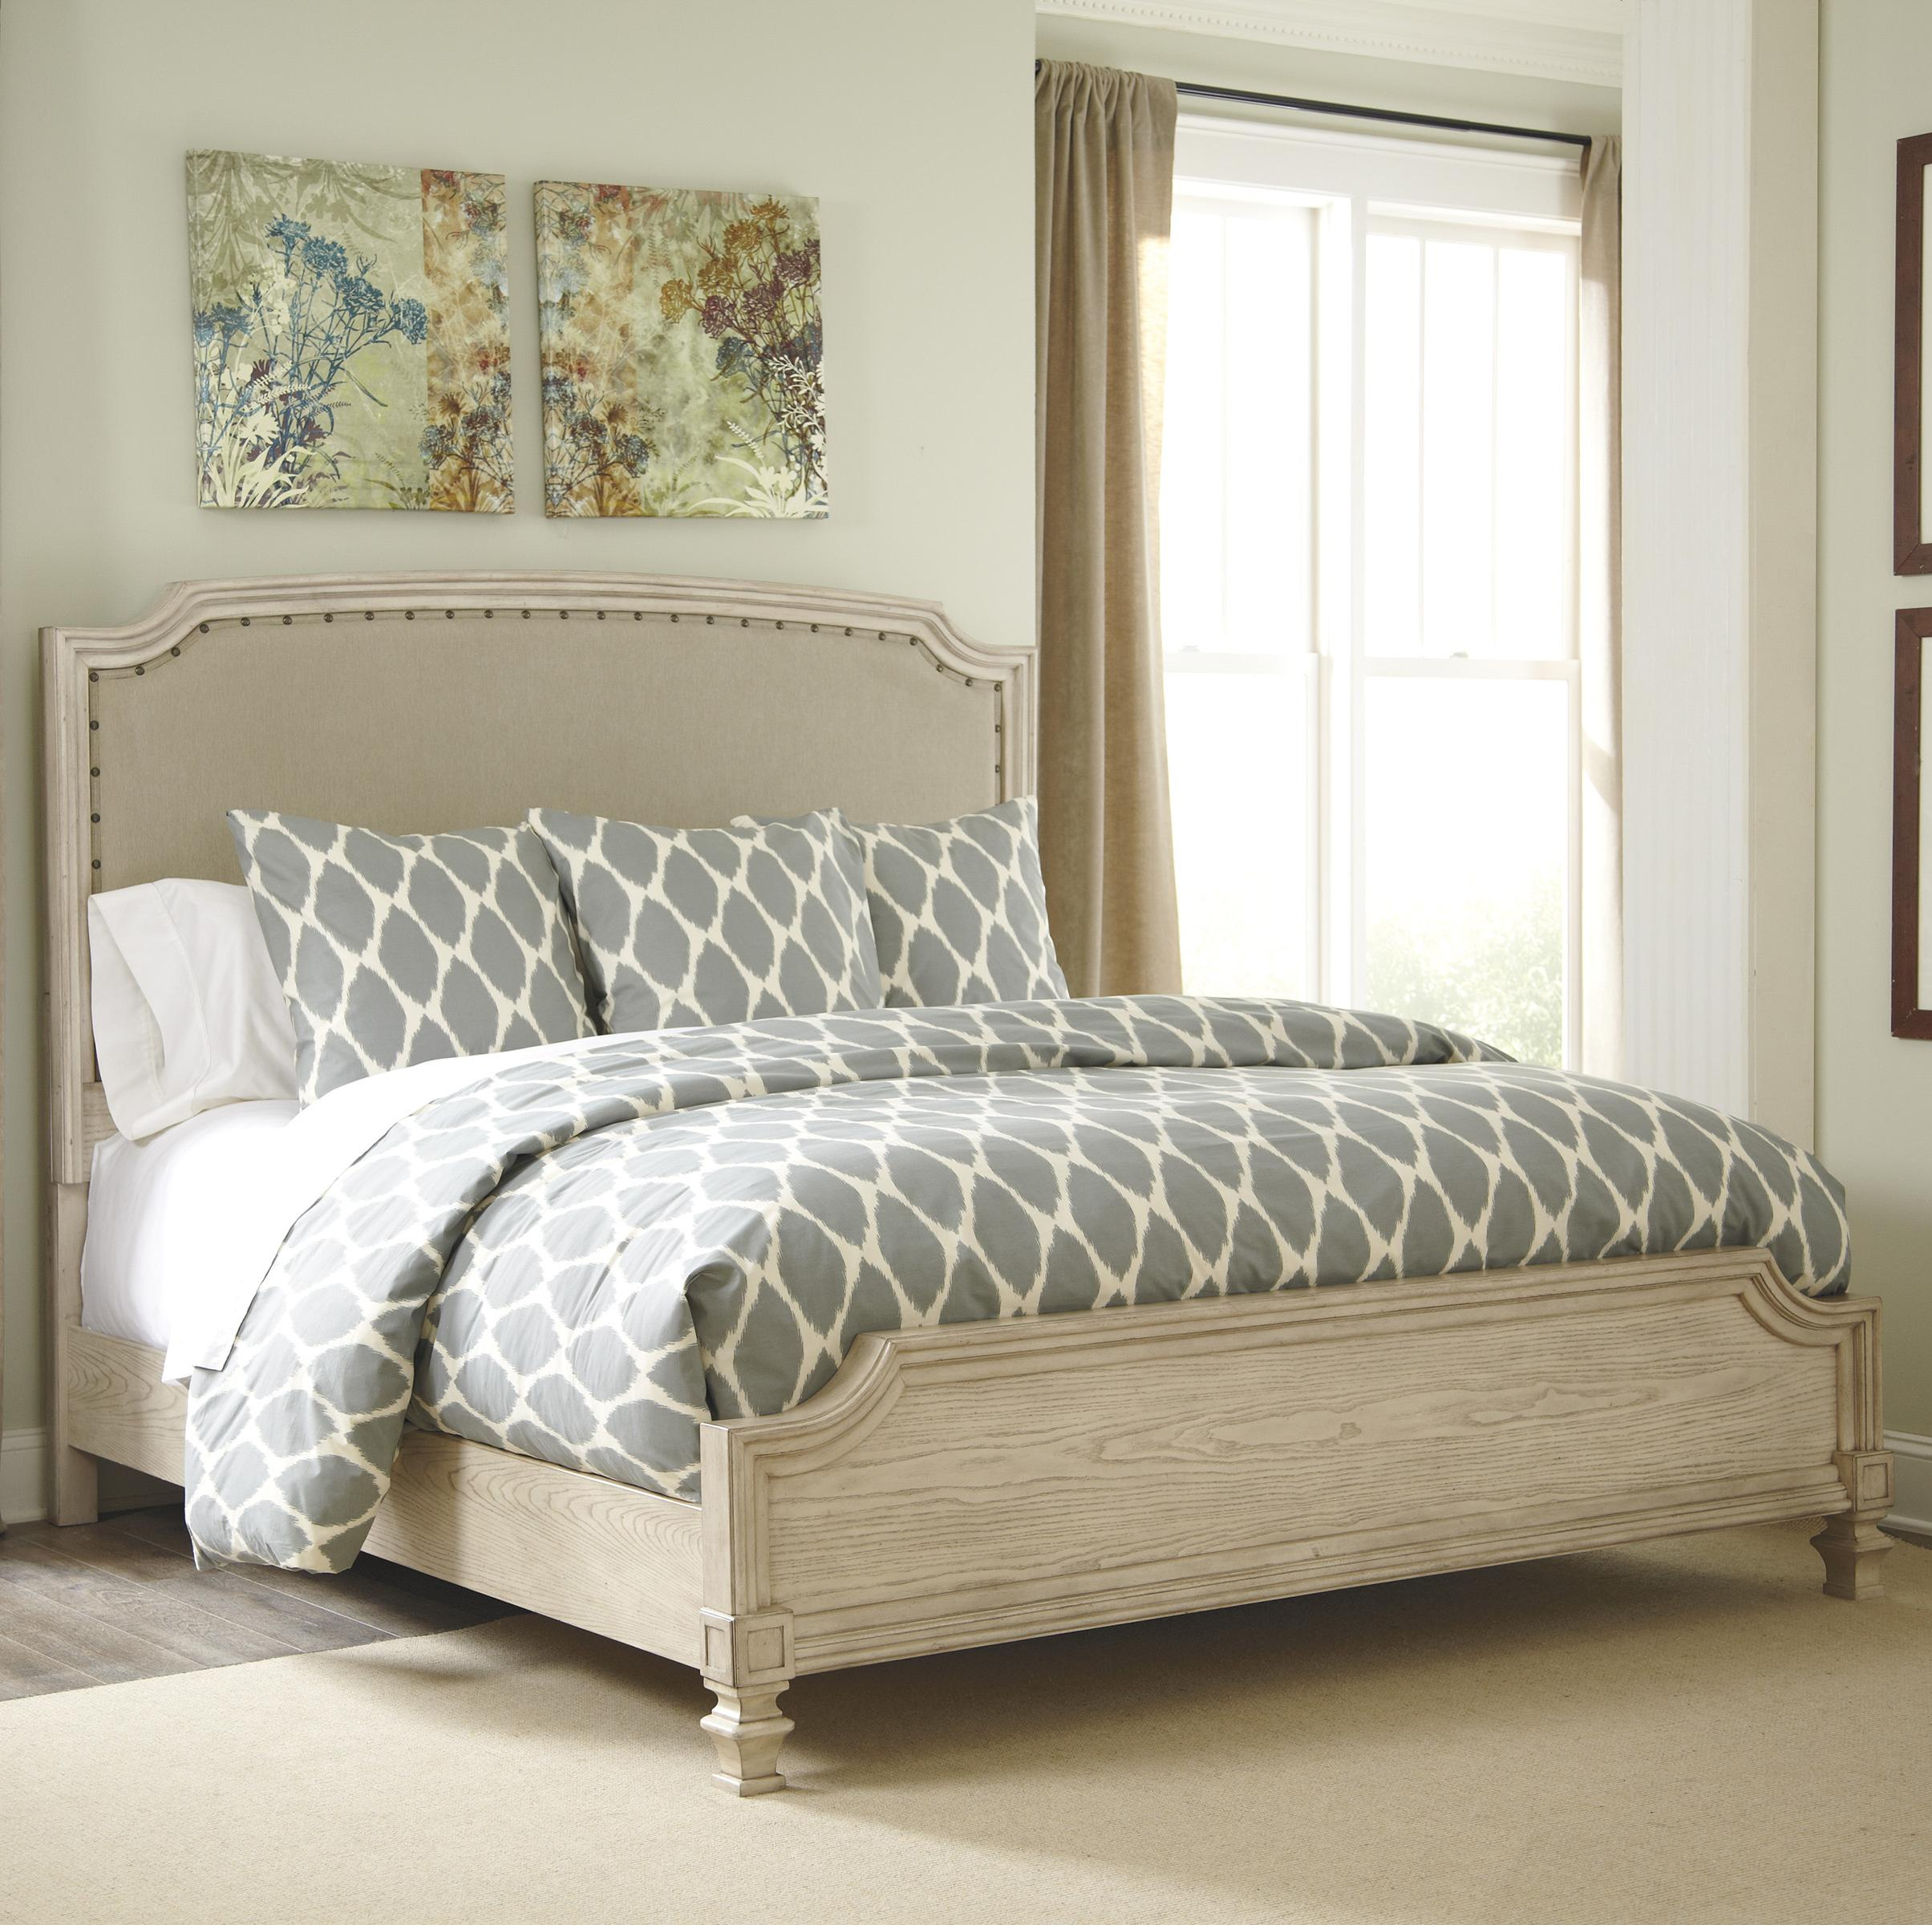 Signature Design by Ashley Demarlos California King Upholstered Panel Bed - Item Number: B693-78+76+94